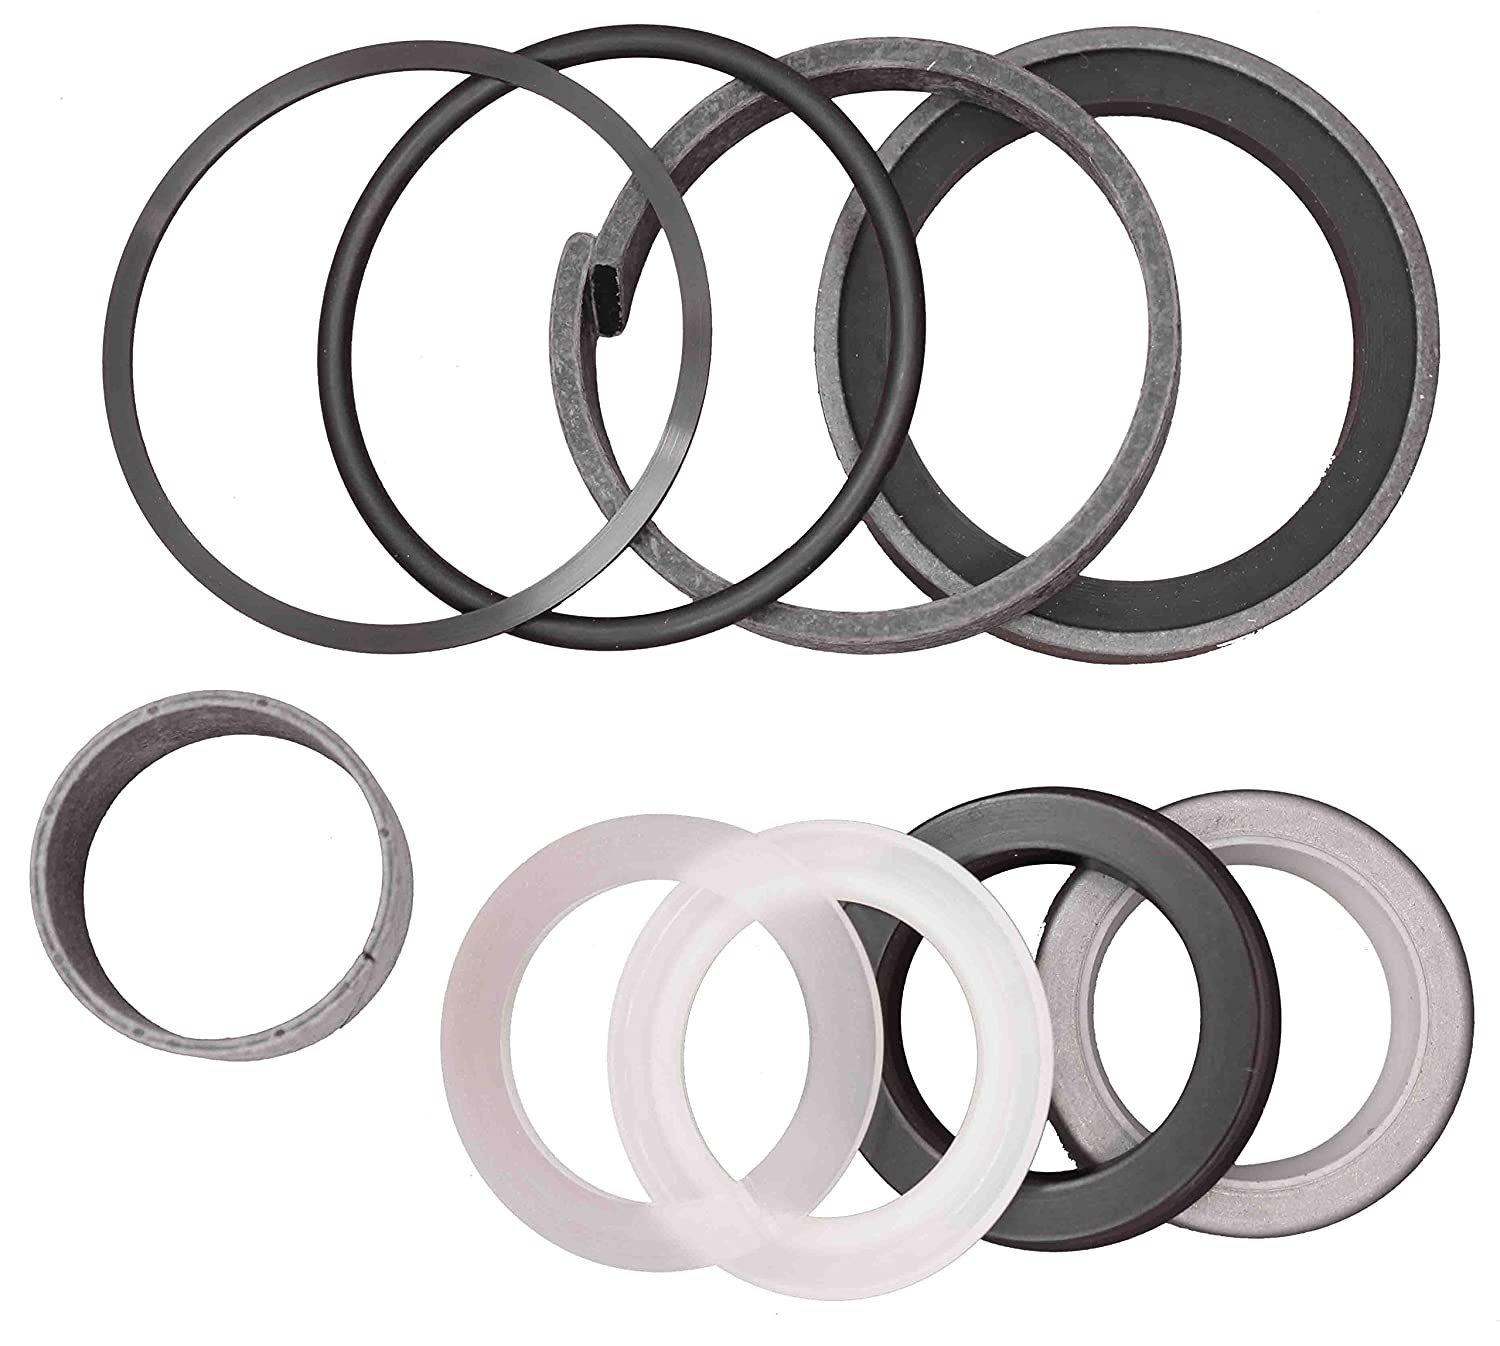 CASE 1543249C1 HYDRAULIC CYLINDER SEAL KIT